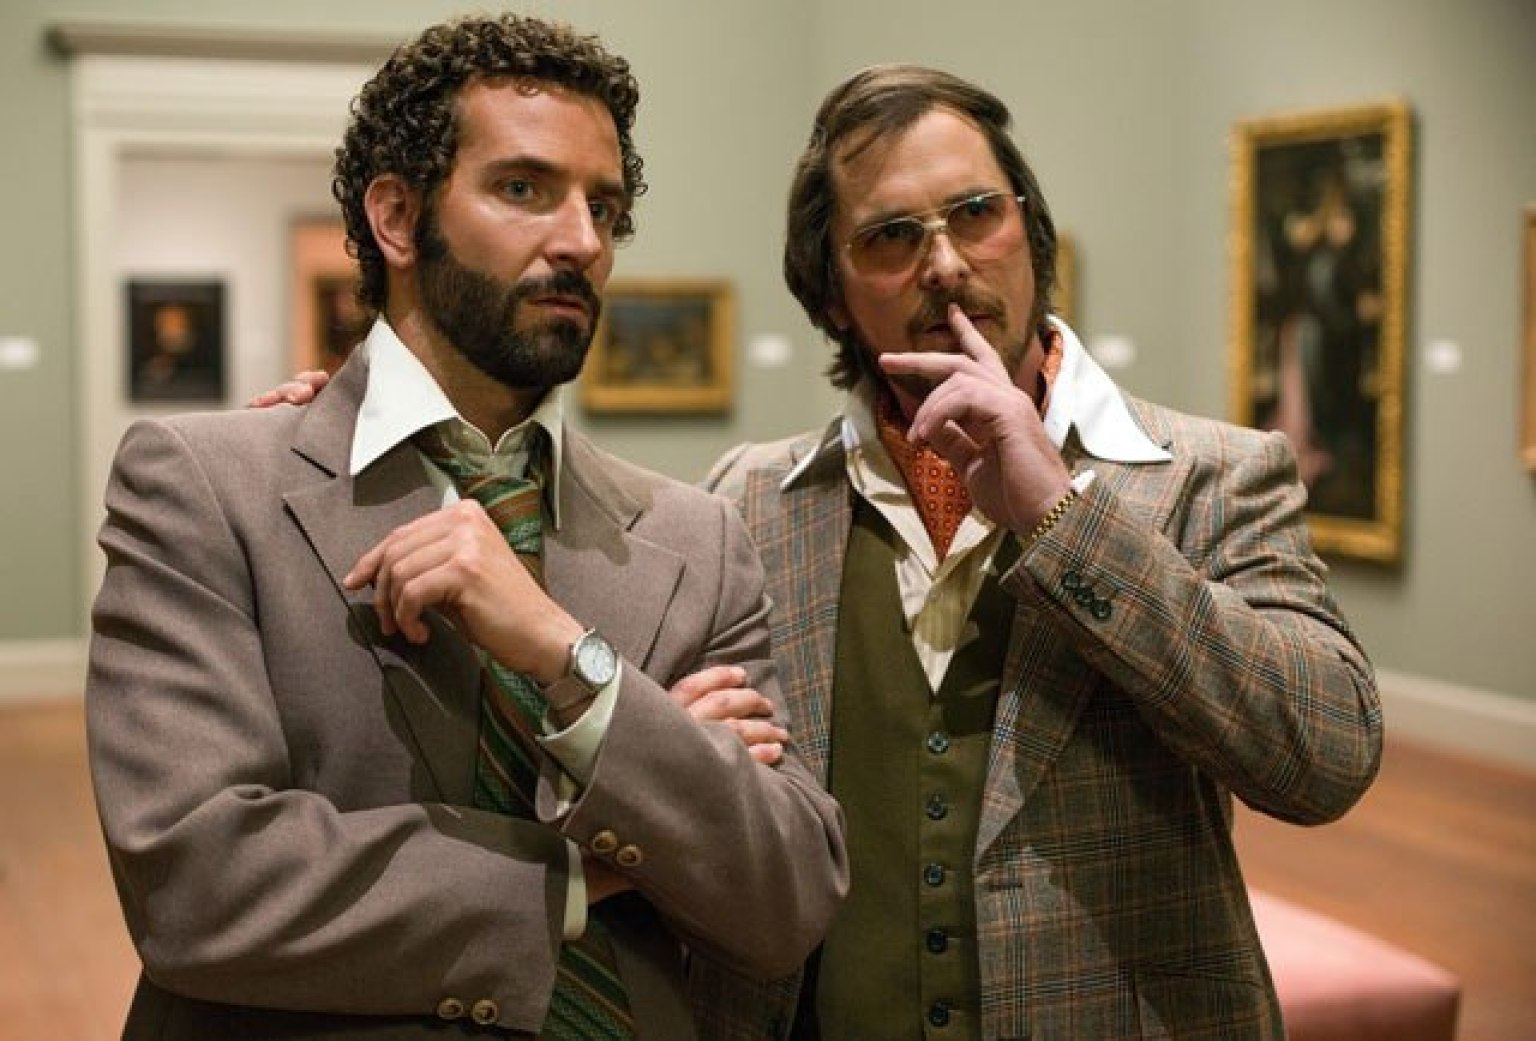 Christian Bale and Bradley Cooper in American Hustle.